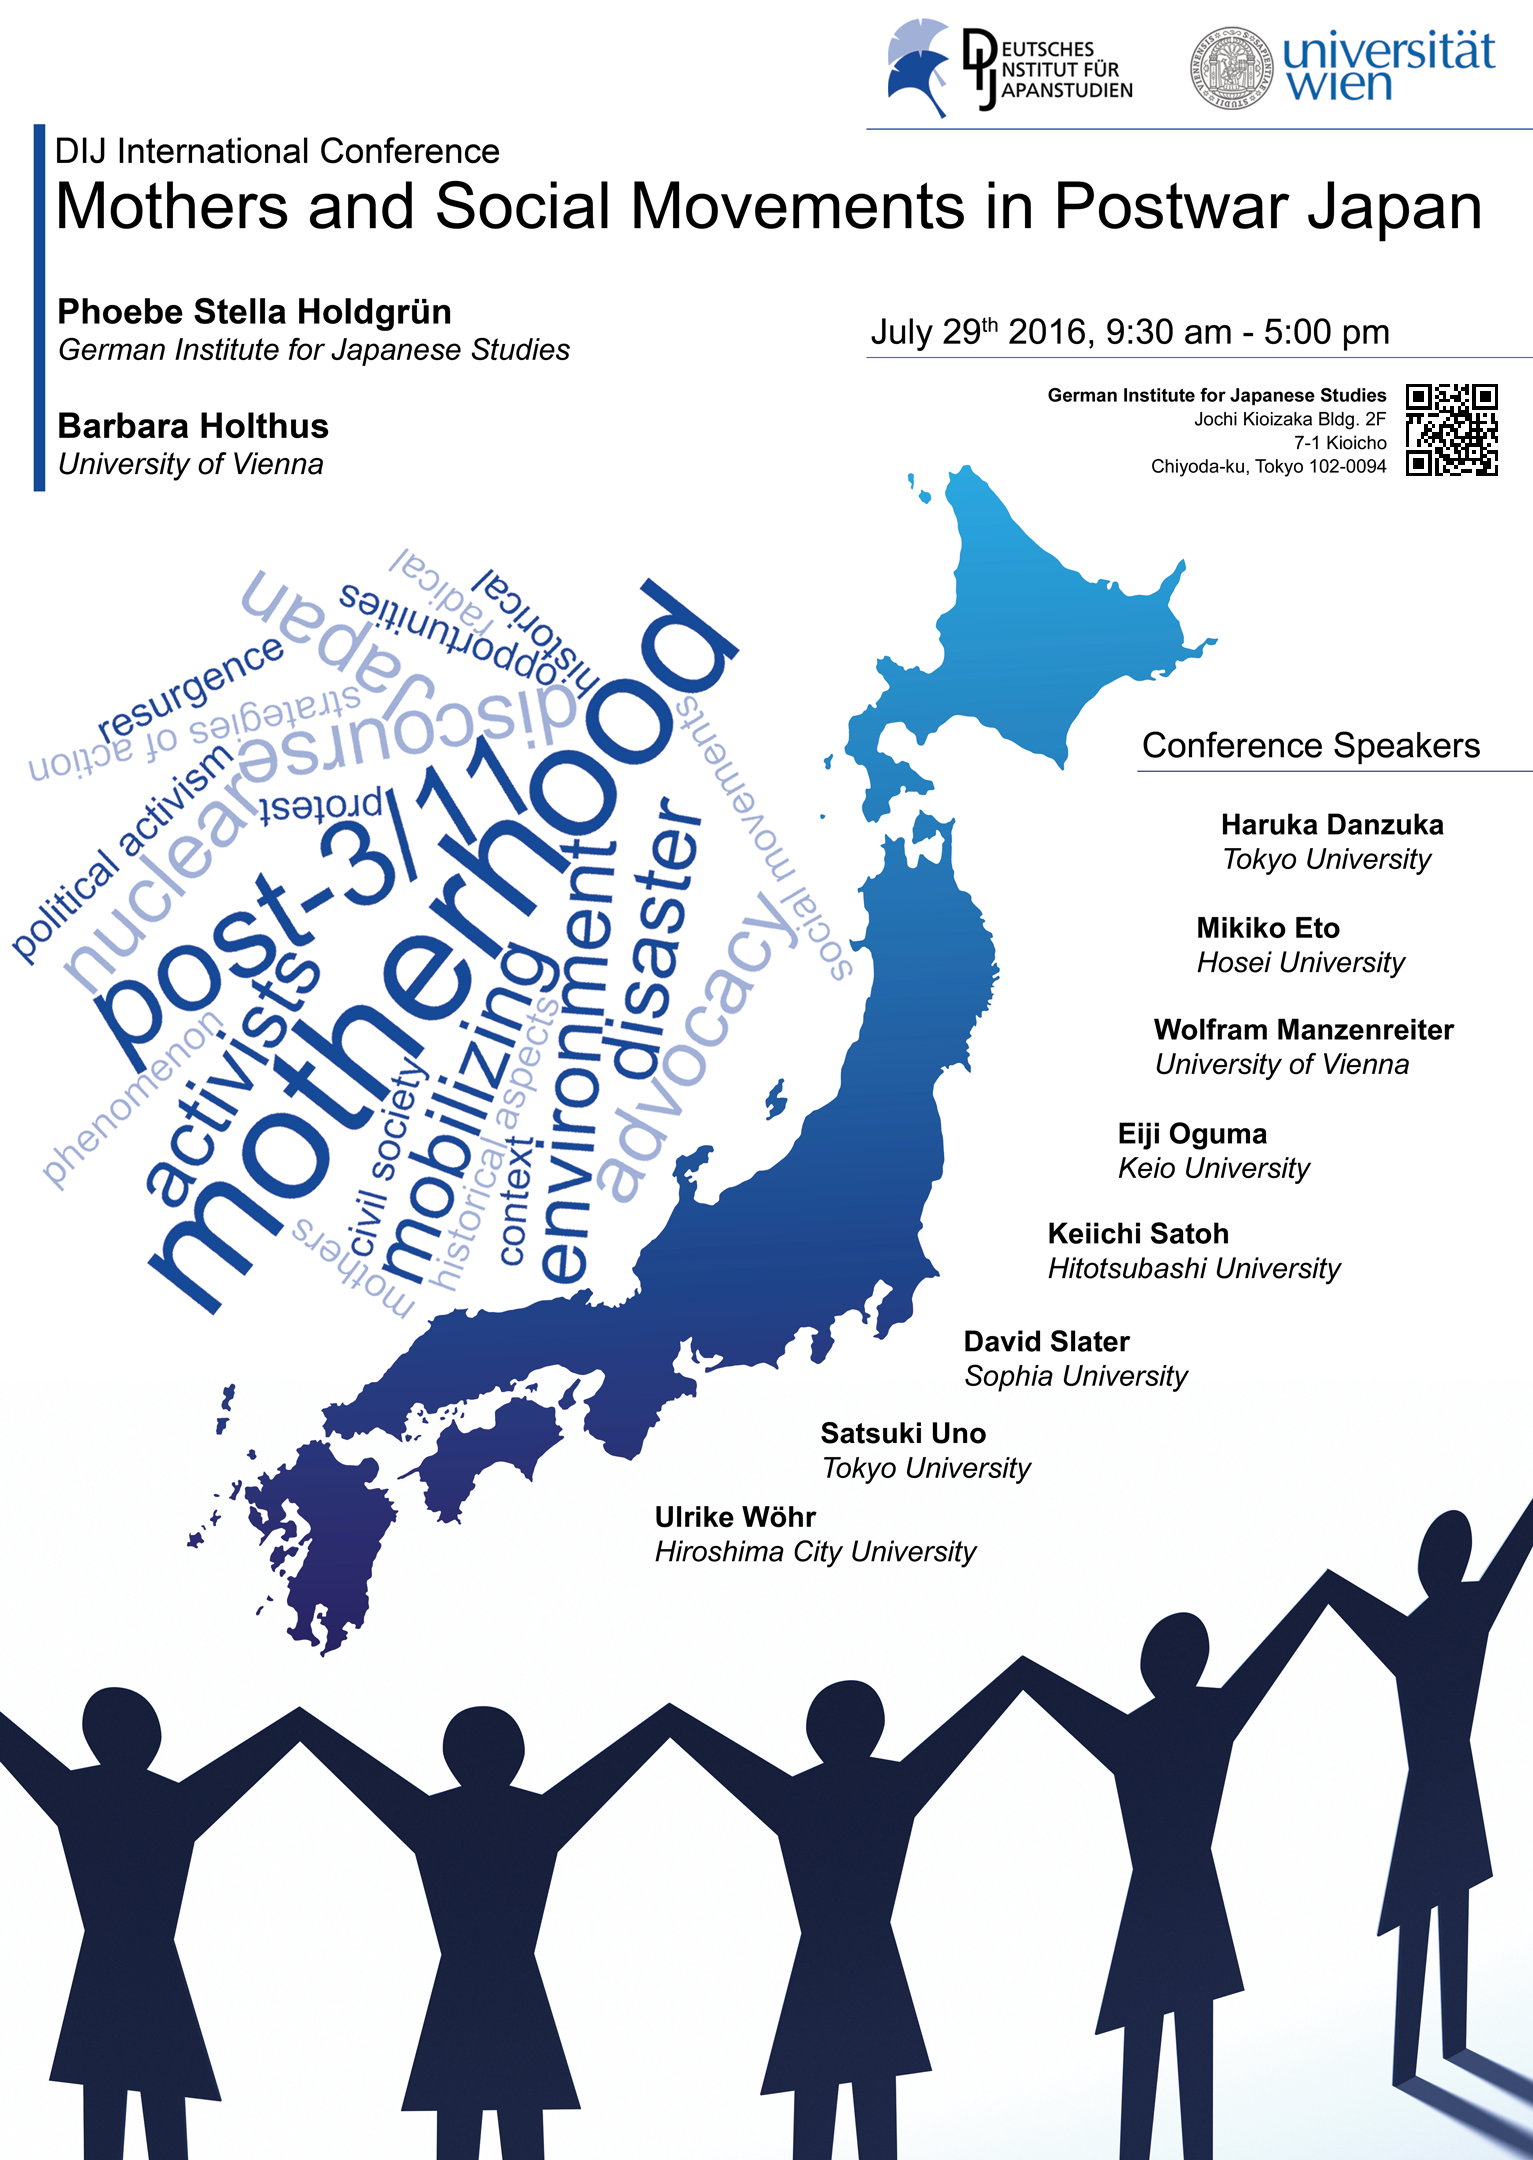 Mothers and Social Movements in Postwar Japan